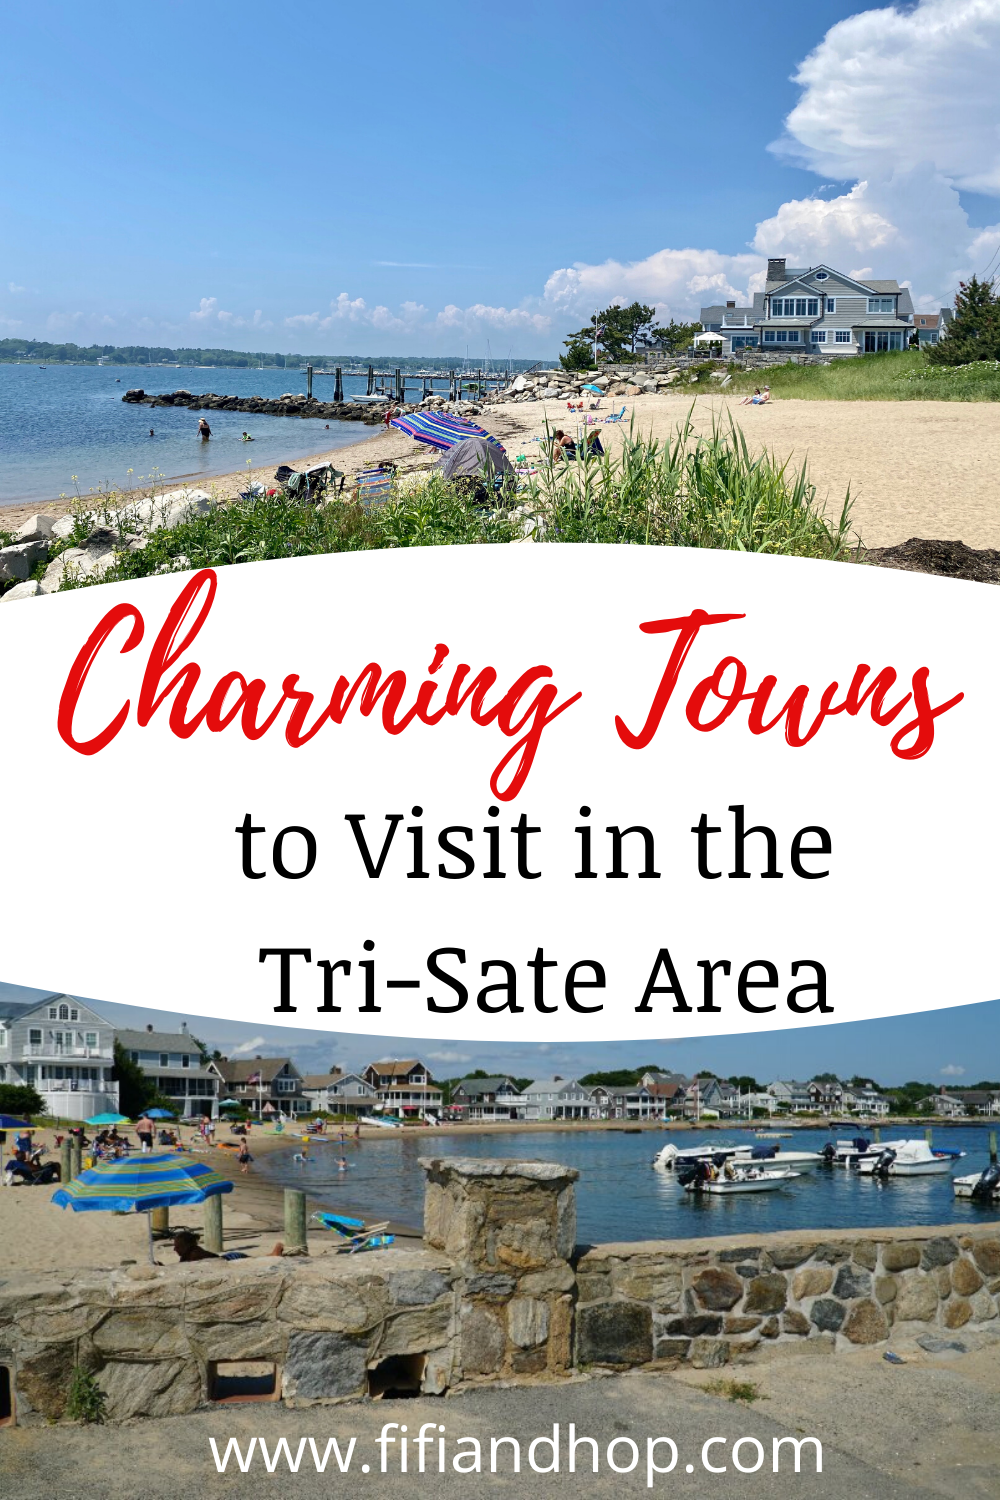 Guide to the most charming towns to visit in the Tri-State area (in Connecticut, New York and New Jersey). From beach towns to the bucolic countryside to the Catskills, these are the best small towns to visit. #Tristatearea #smalltowns #charmingtowns #connecticut #newyork #newjersey #travel #familytravel